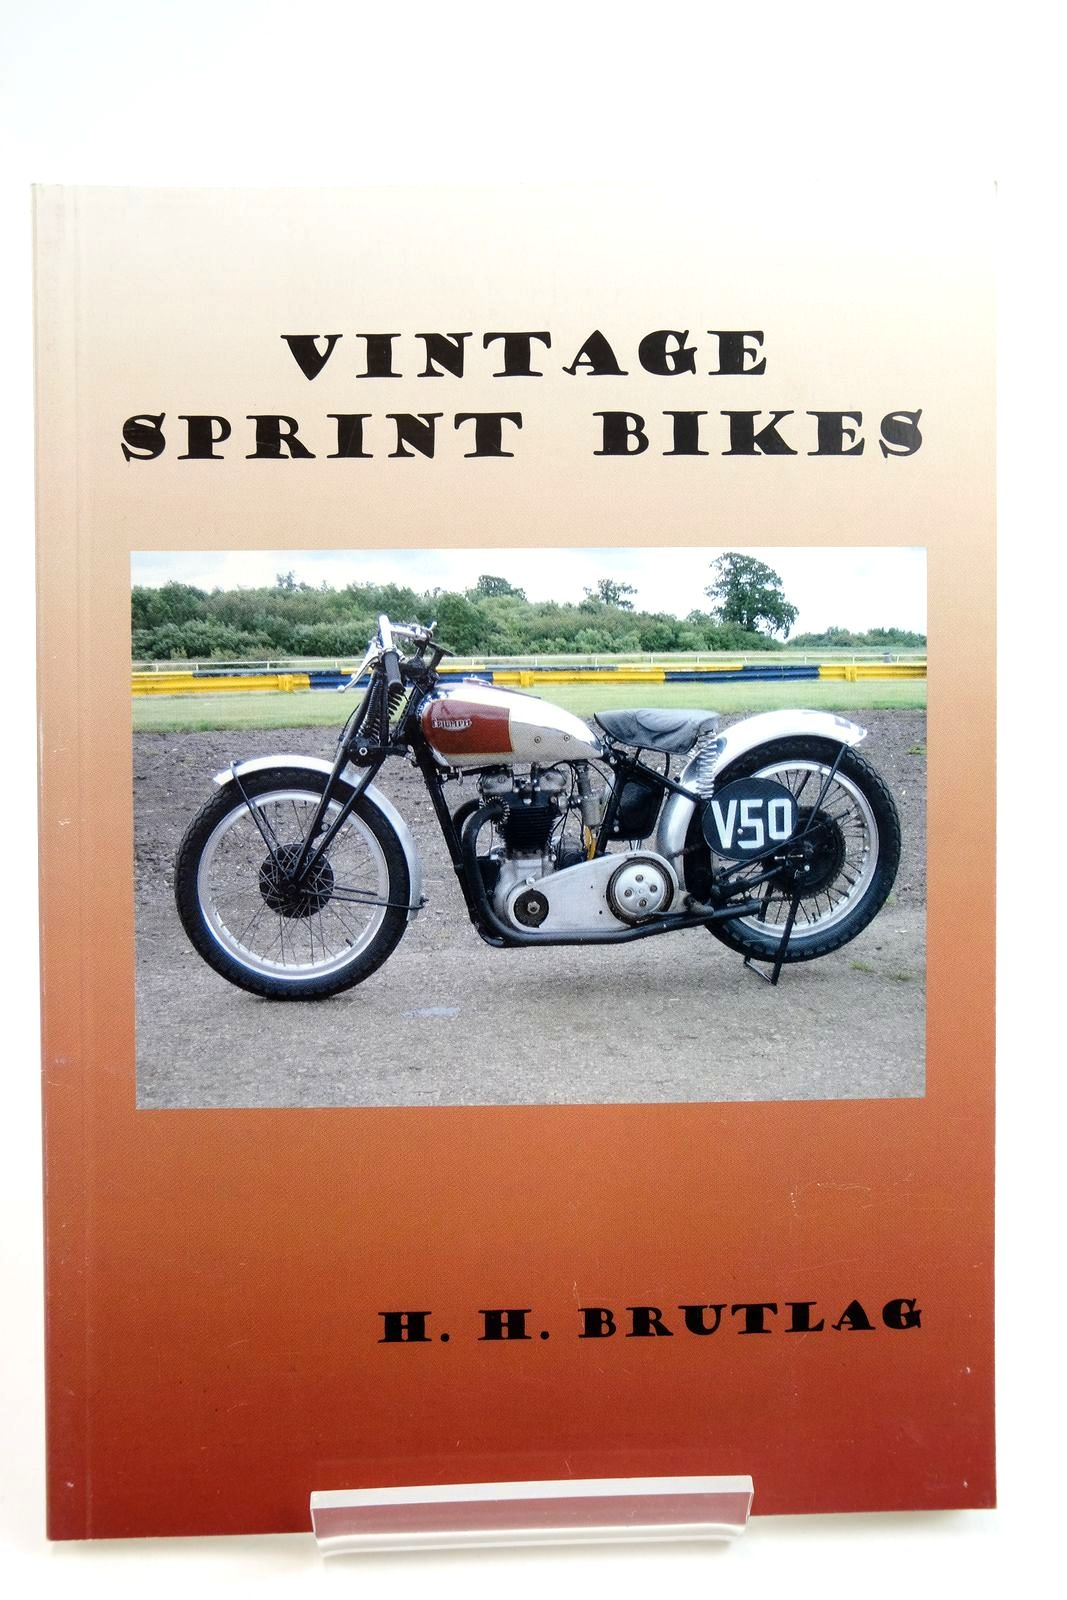 Photo of VINTAGE SPRINT BIKES written by Brutlag, H.H. published by Rennsport Sidecars (STOCK CODE: 2135201)  for sale by Stella & Rose's Books